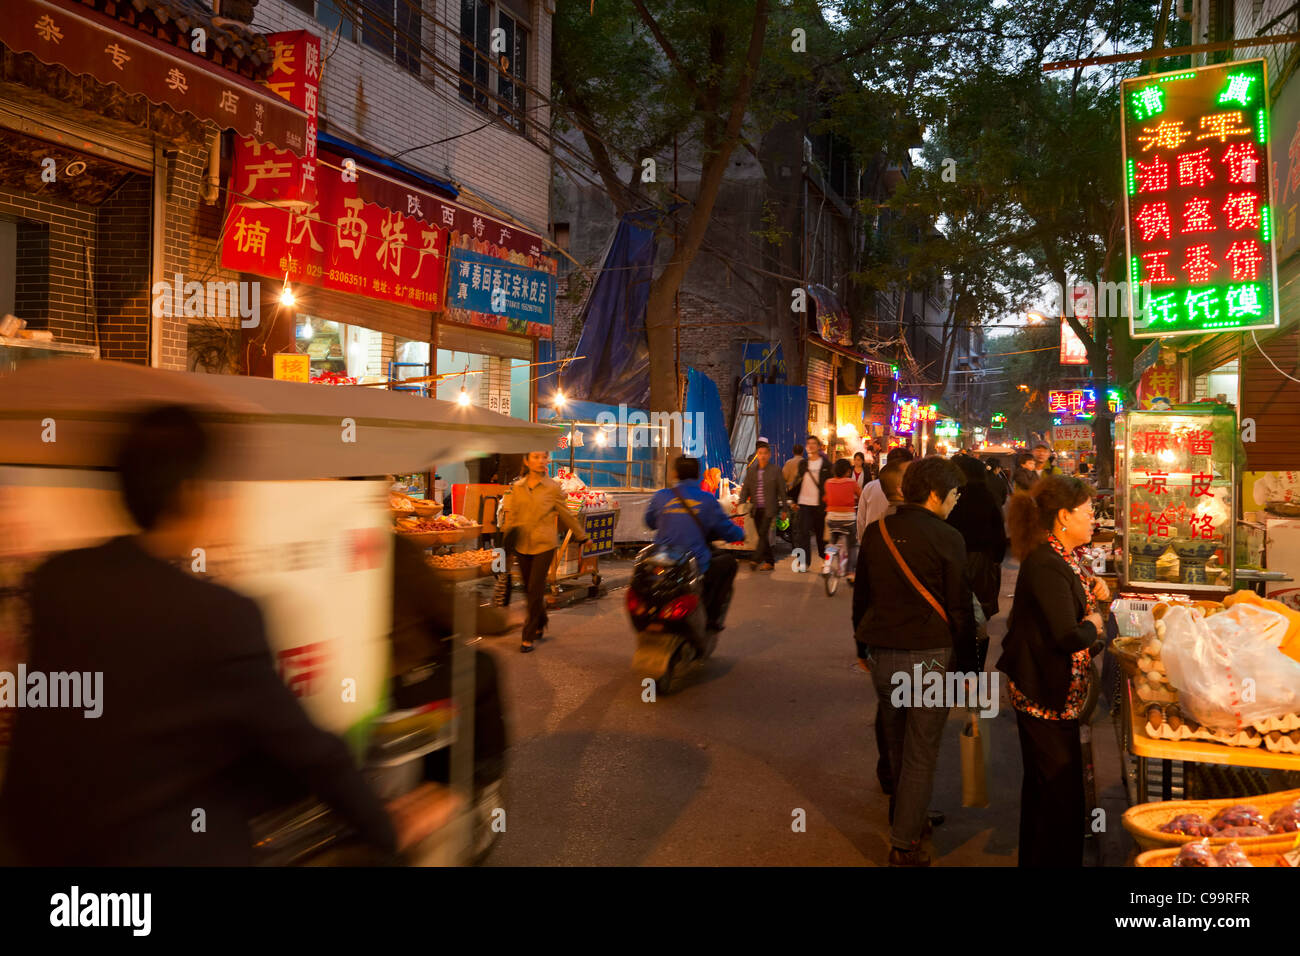 Traditional food stalls and shops, Xian, Shaanxi Province, PRC, People's Republic of China, Asia - Stock Image